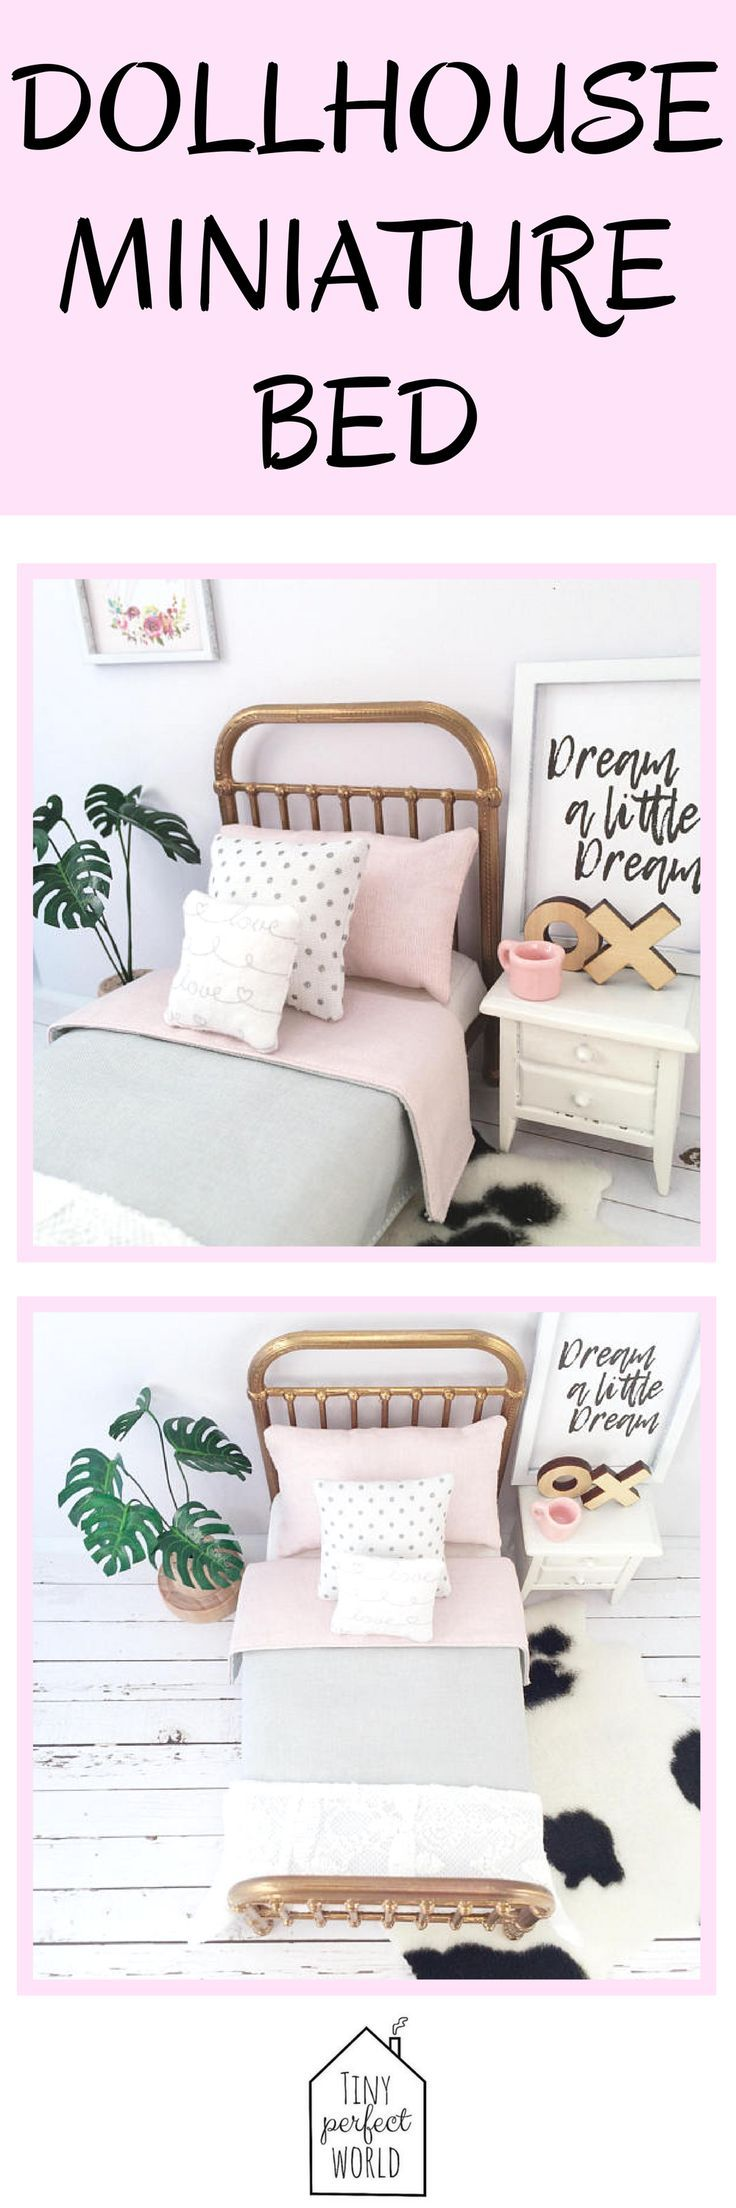 Miniature Bed, Love Pink Modern dollhouse bed, 1:12 scale modern bed, Incy  Interiors Inspired miniature bed, modern miniature furniture | CLICK HERE  to see ...